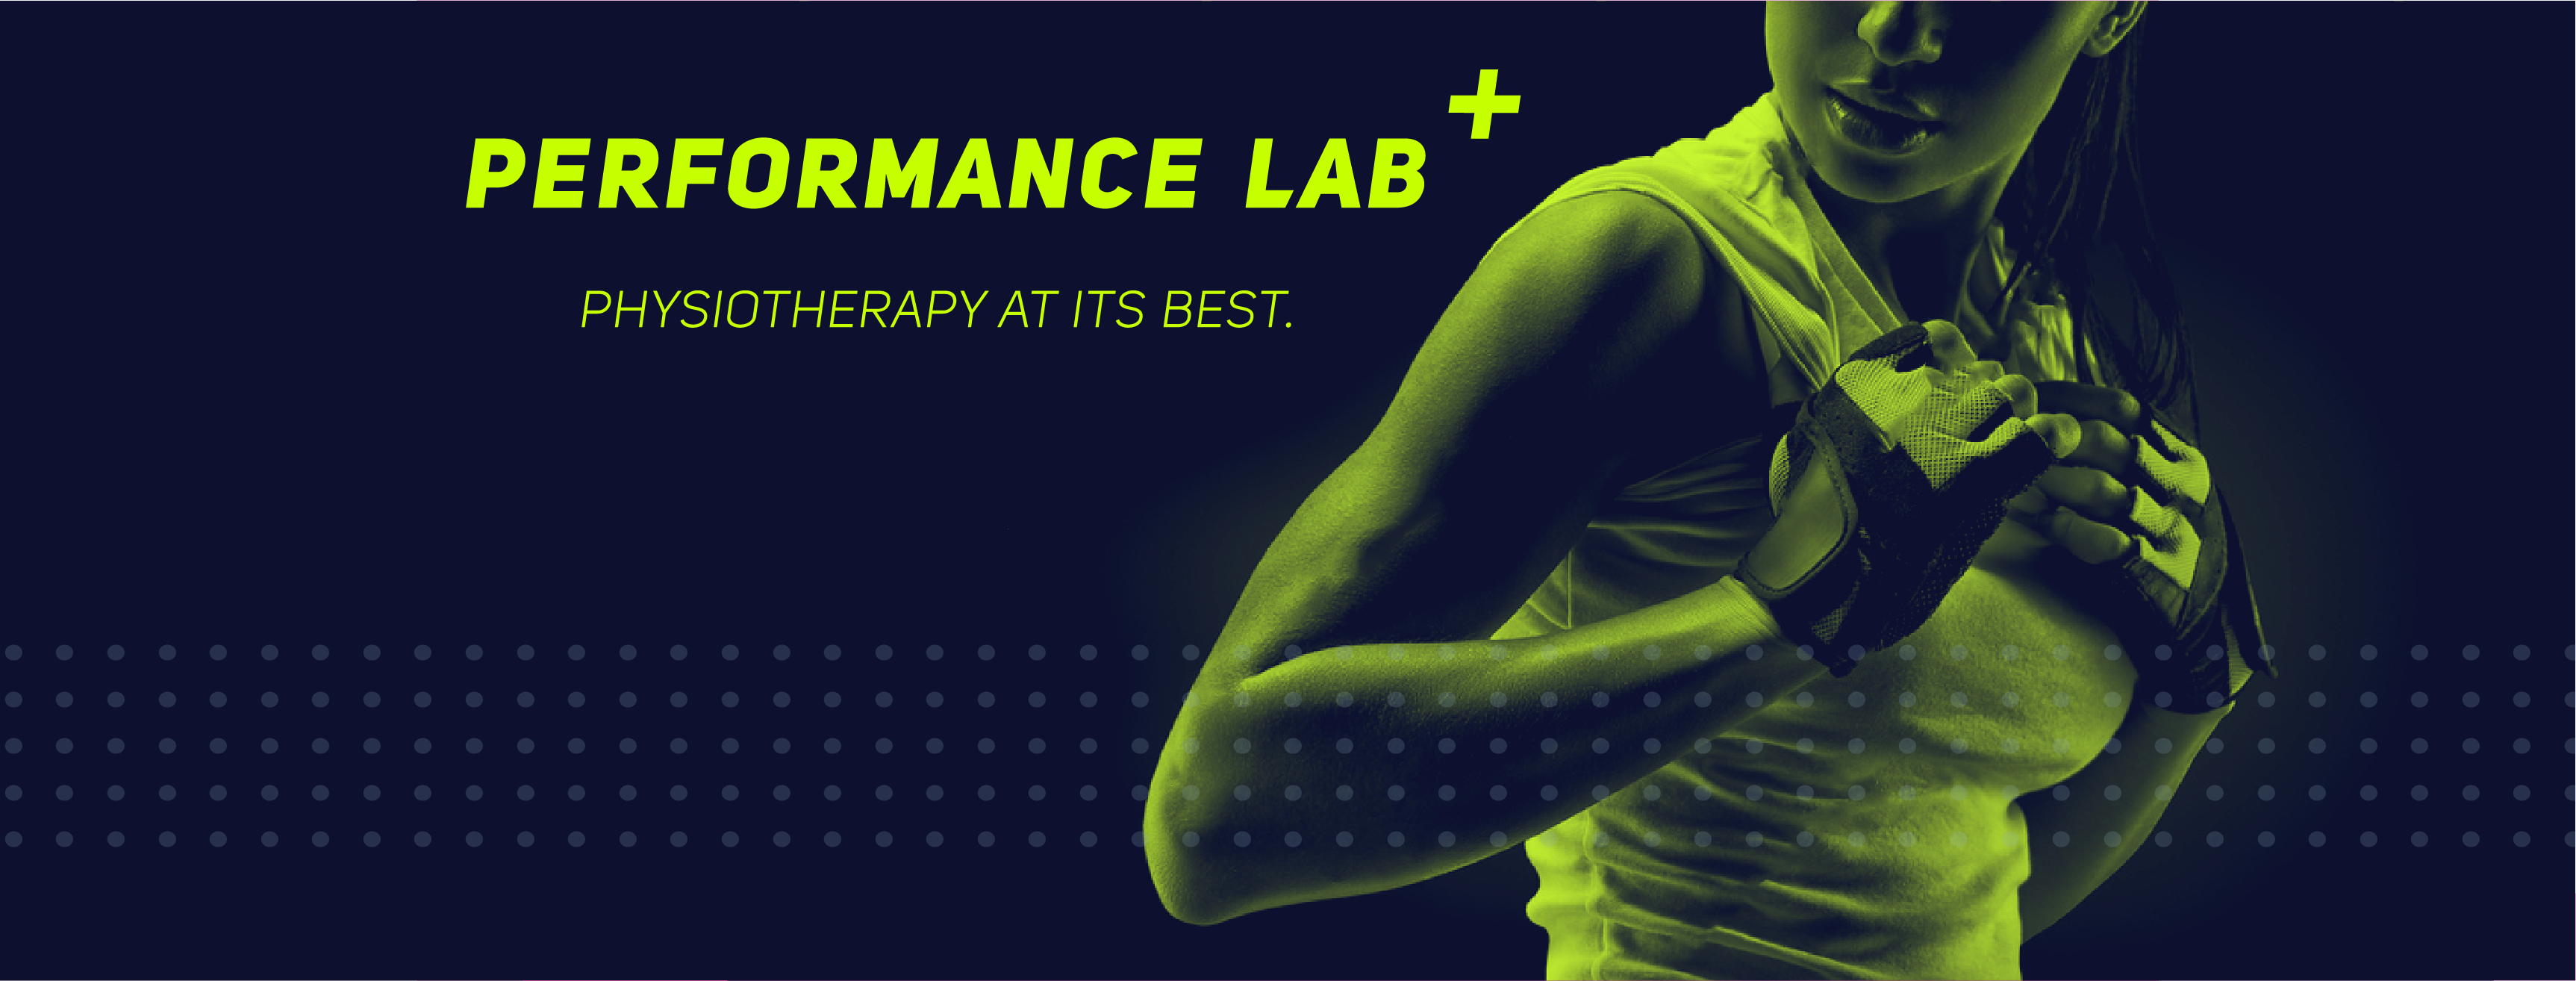 Performance Lab Physio - Burnley Burnley 01254 457867